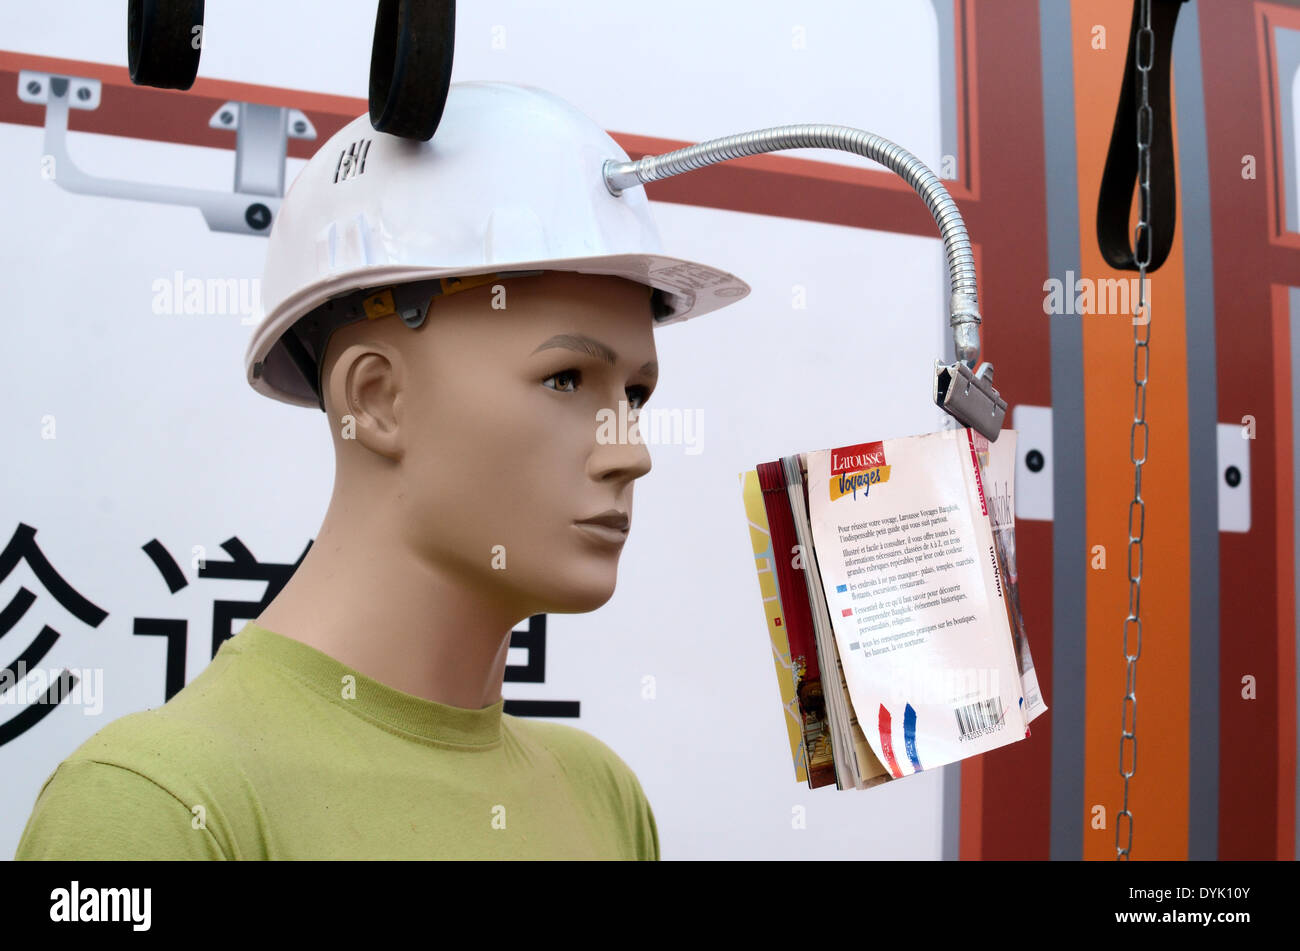 Male Train Passenger or Dummy Wearing Hard Helmet Gadget with Book Holder on Train. Useless Japanese Gadget or Chindogu - Stock Image